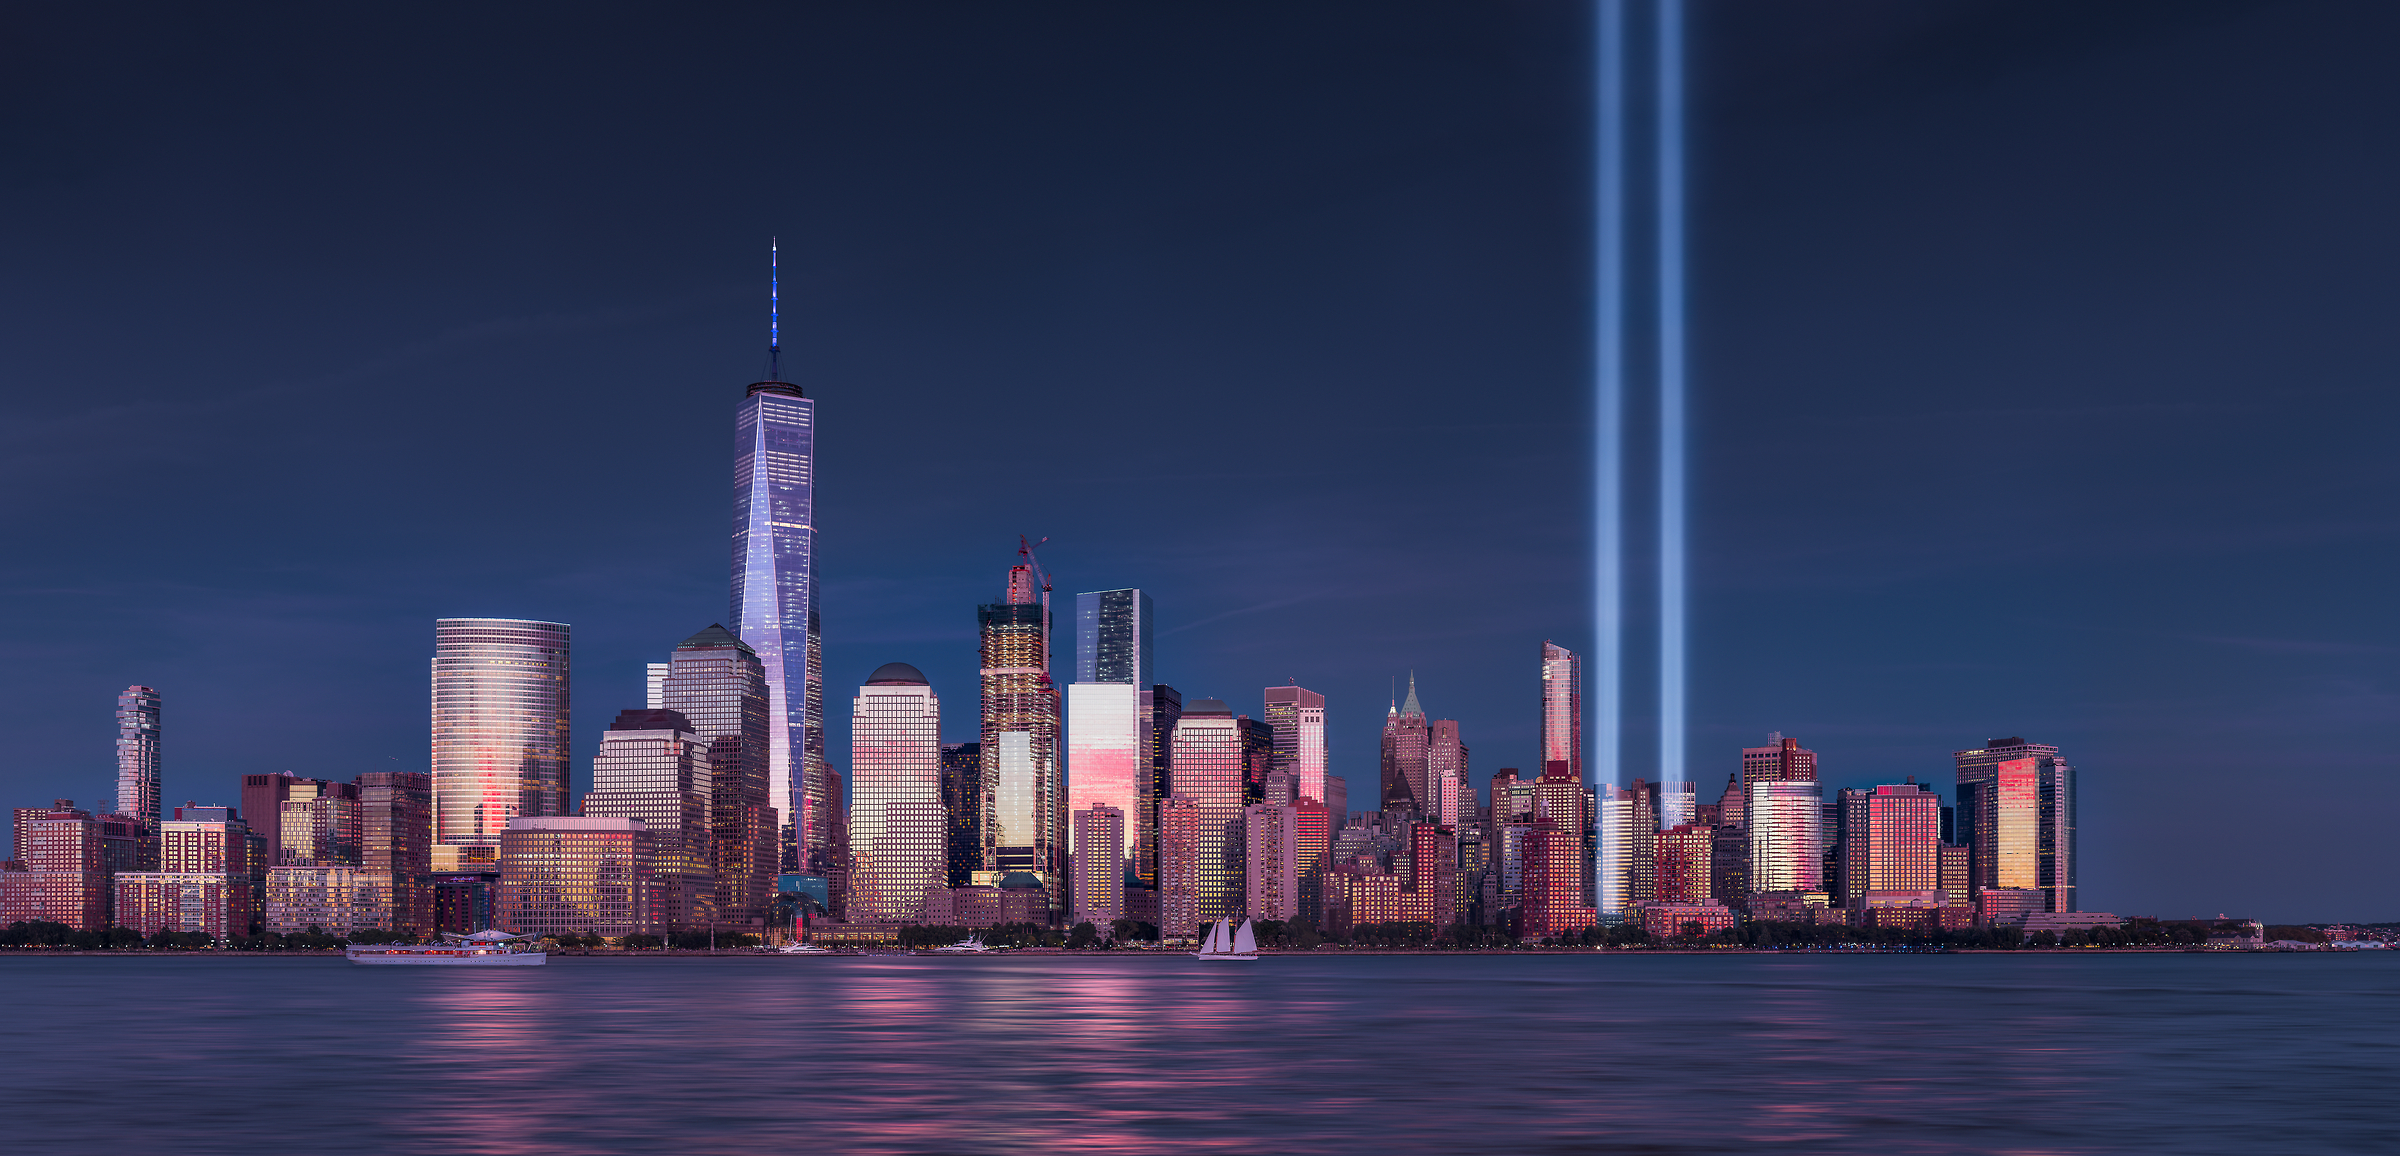 597 megapixels! The highest resolution VAST photo of the September 11th 9/11 Tribute in Light memorial, the World Trade Center, and the Manhattan city skyline at sunset in New York City; created by Dan Piech